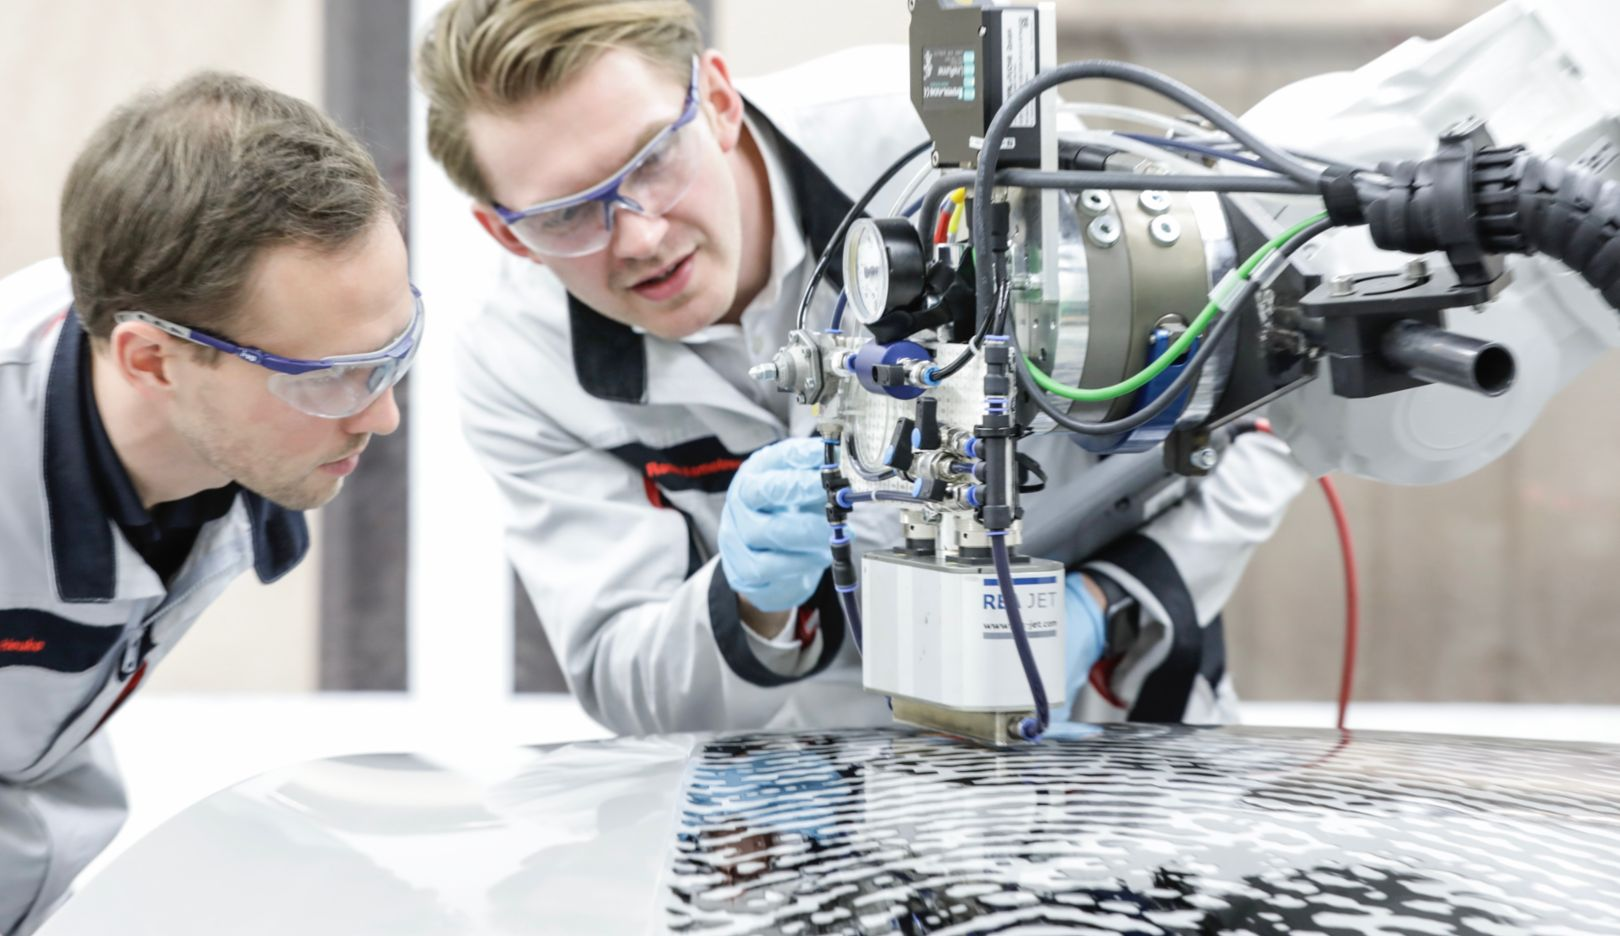 Porsche project team, Direct printing method, Zuffenhausen training centre, 2020, Porsche AG